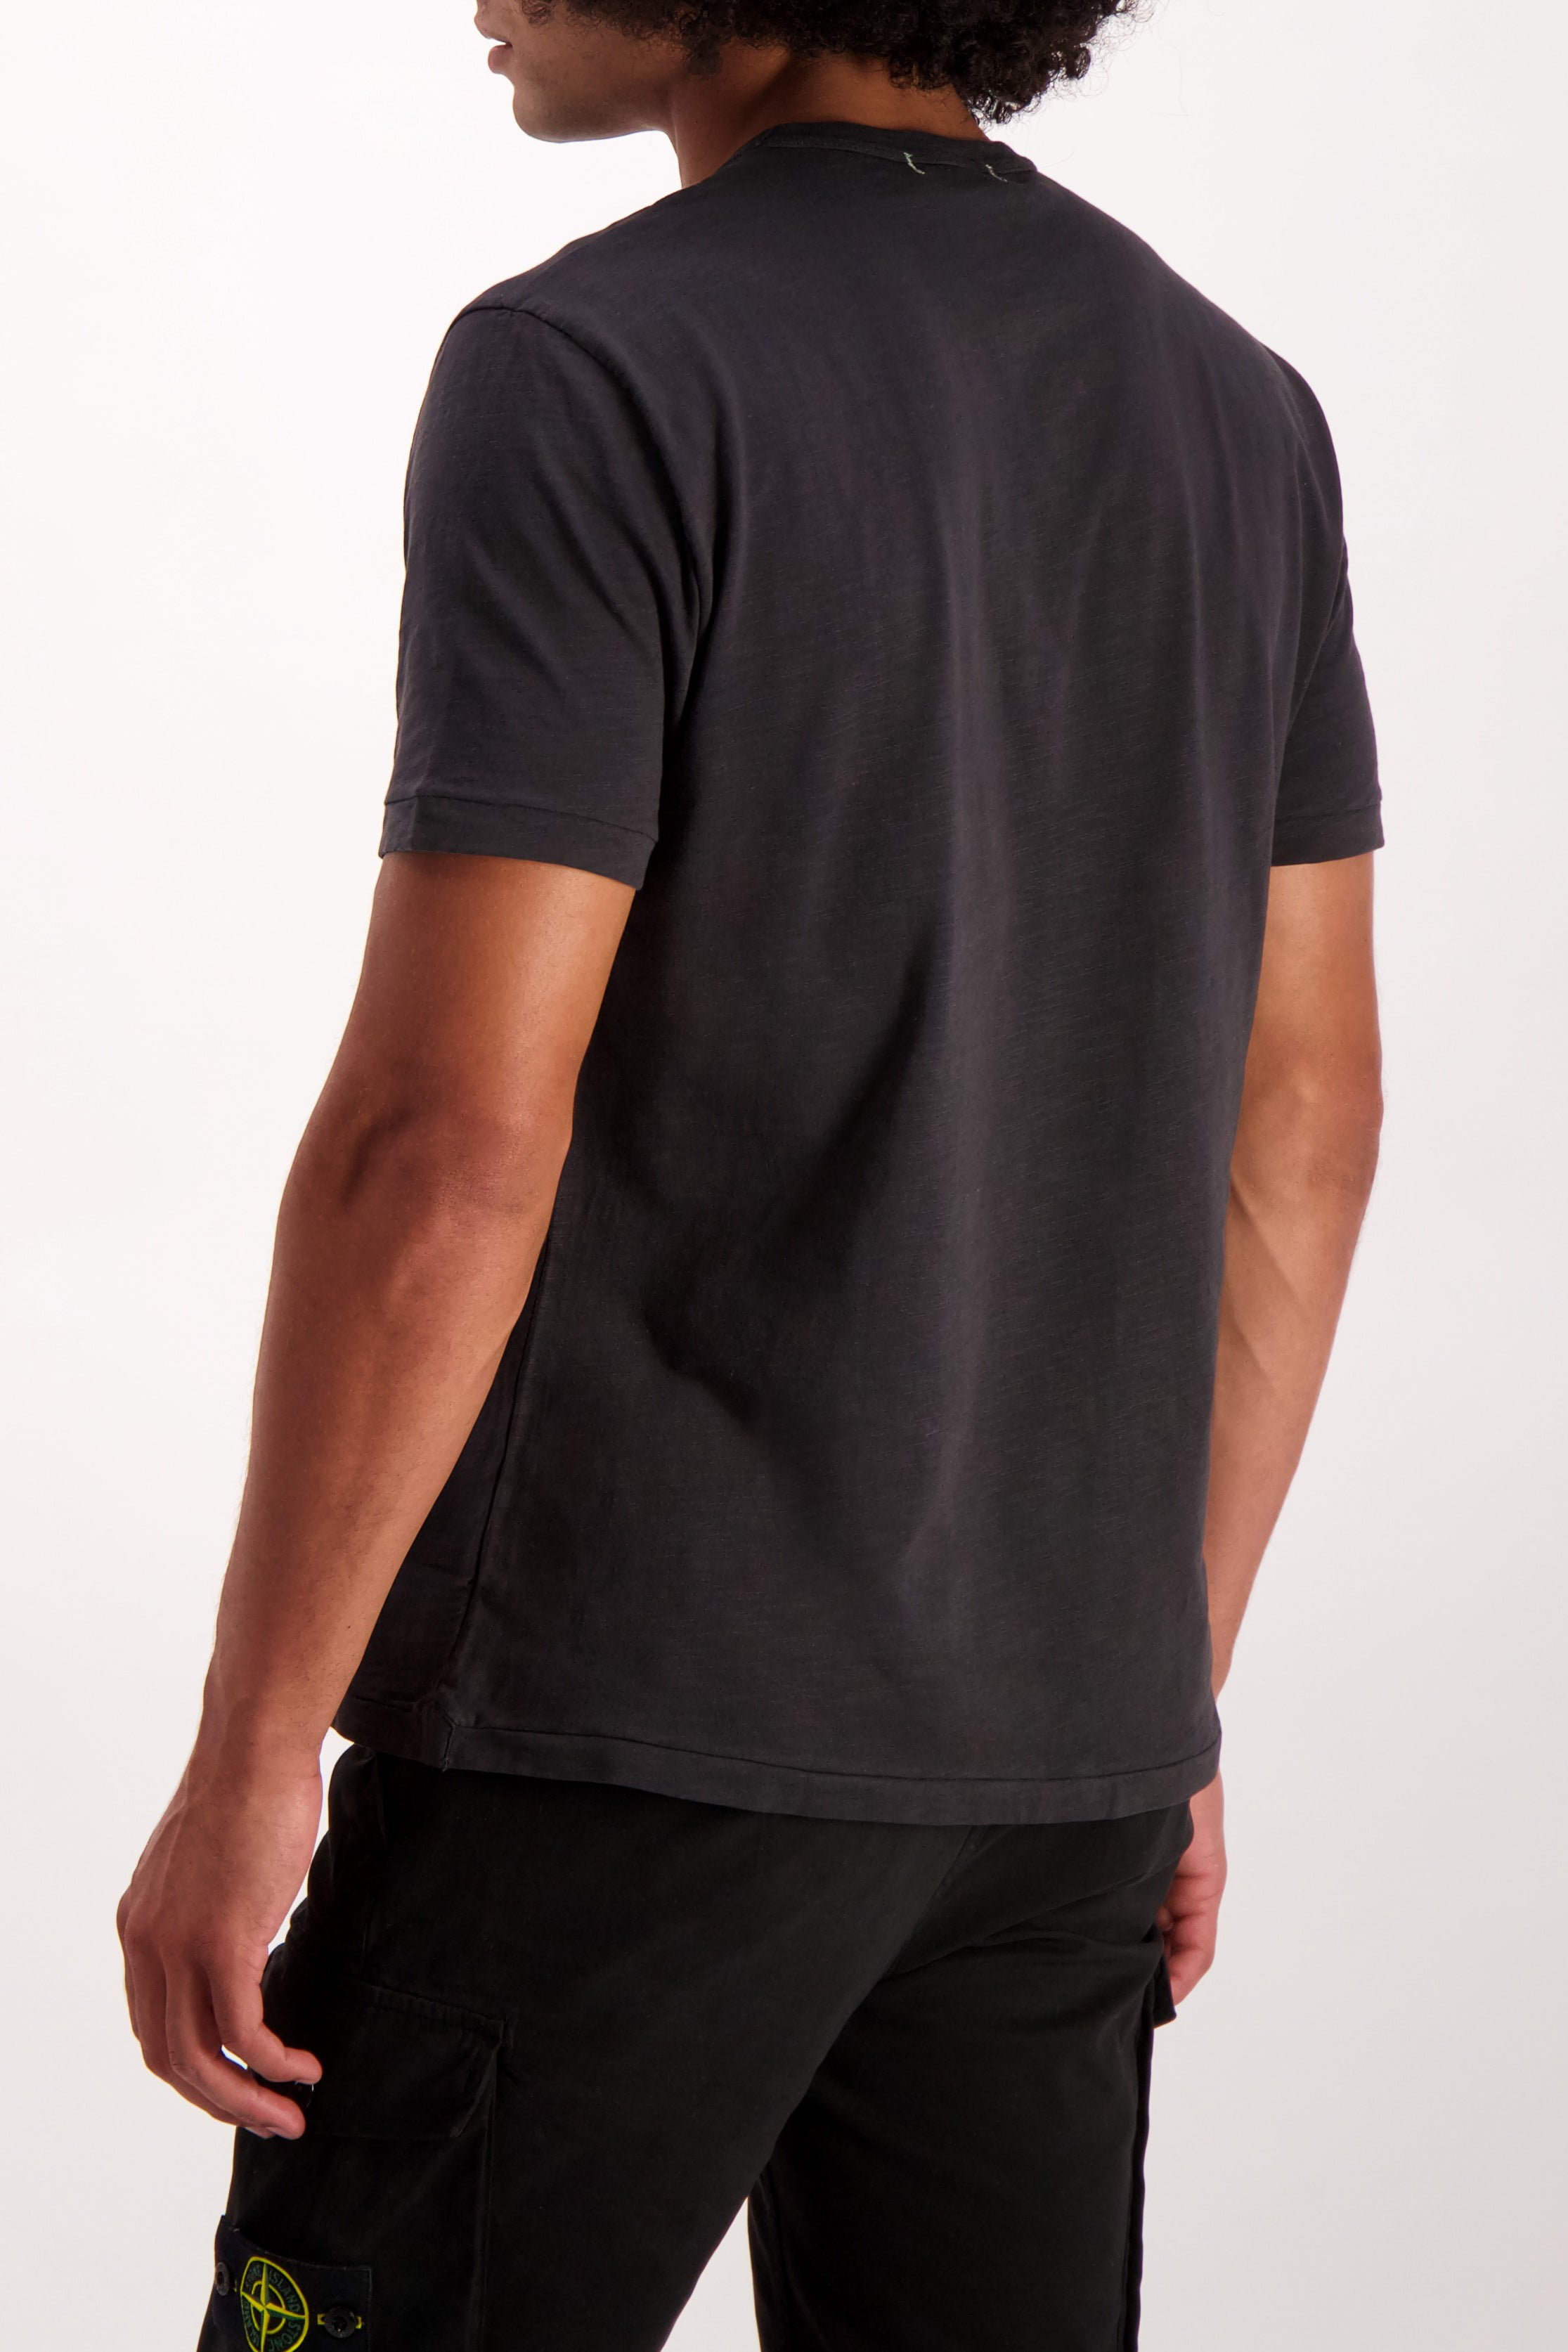 Back Crop Image Of Model Wearing Alex Mill Men's Standard Slub Cotton Tee Black